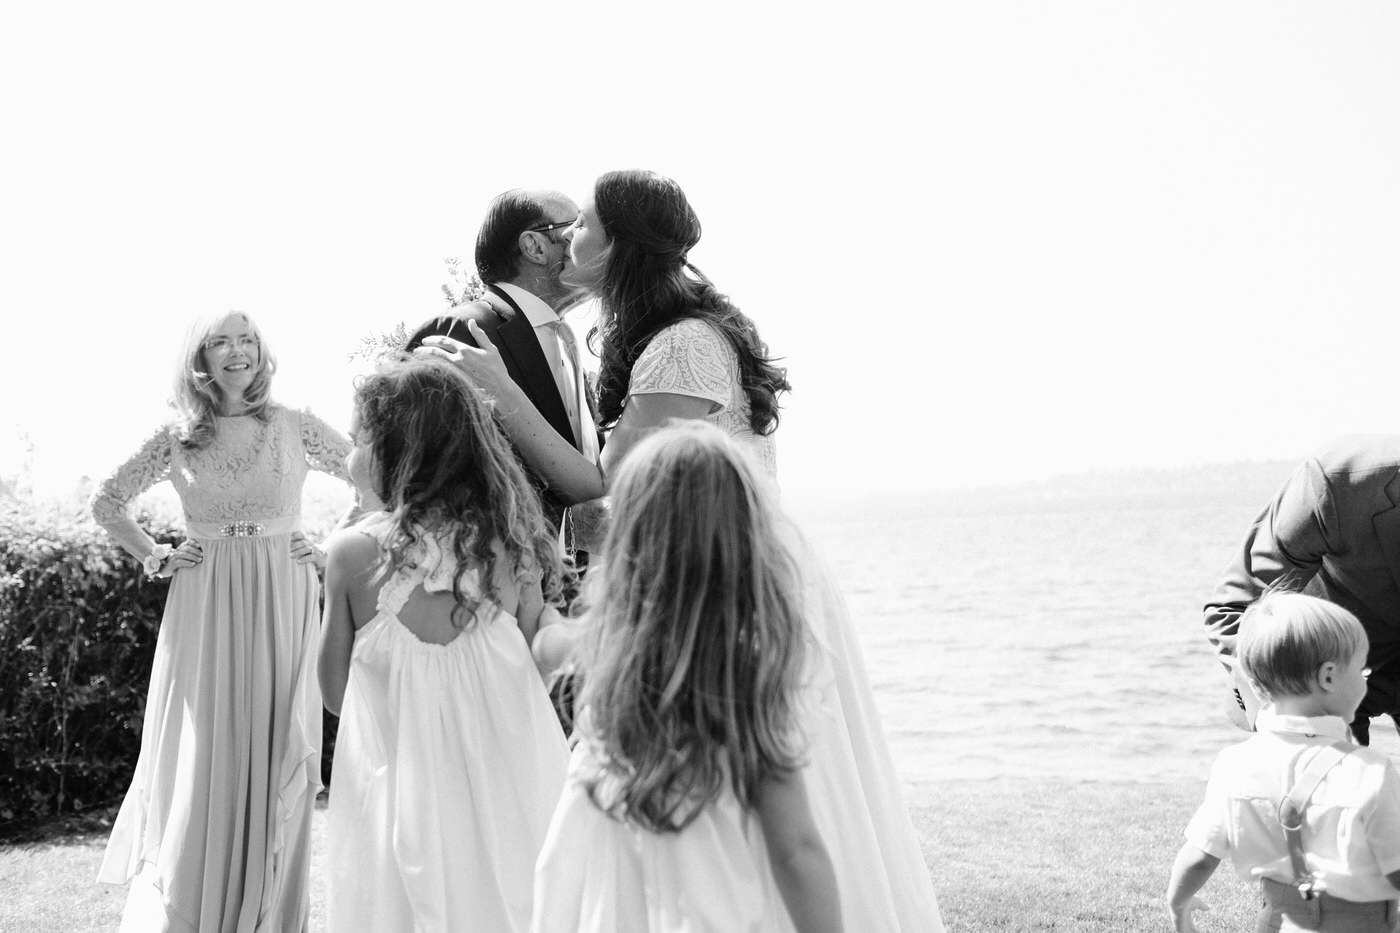 334-pacific-northwest-wedding-photography-by-ryan-flynn.jpg